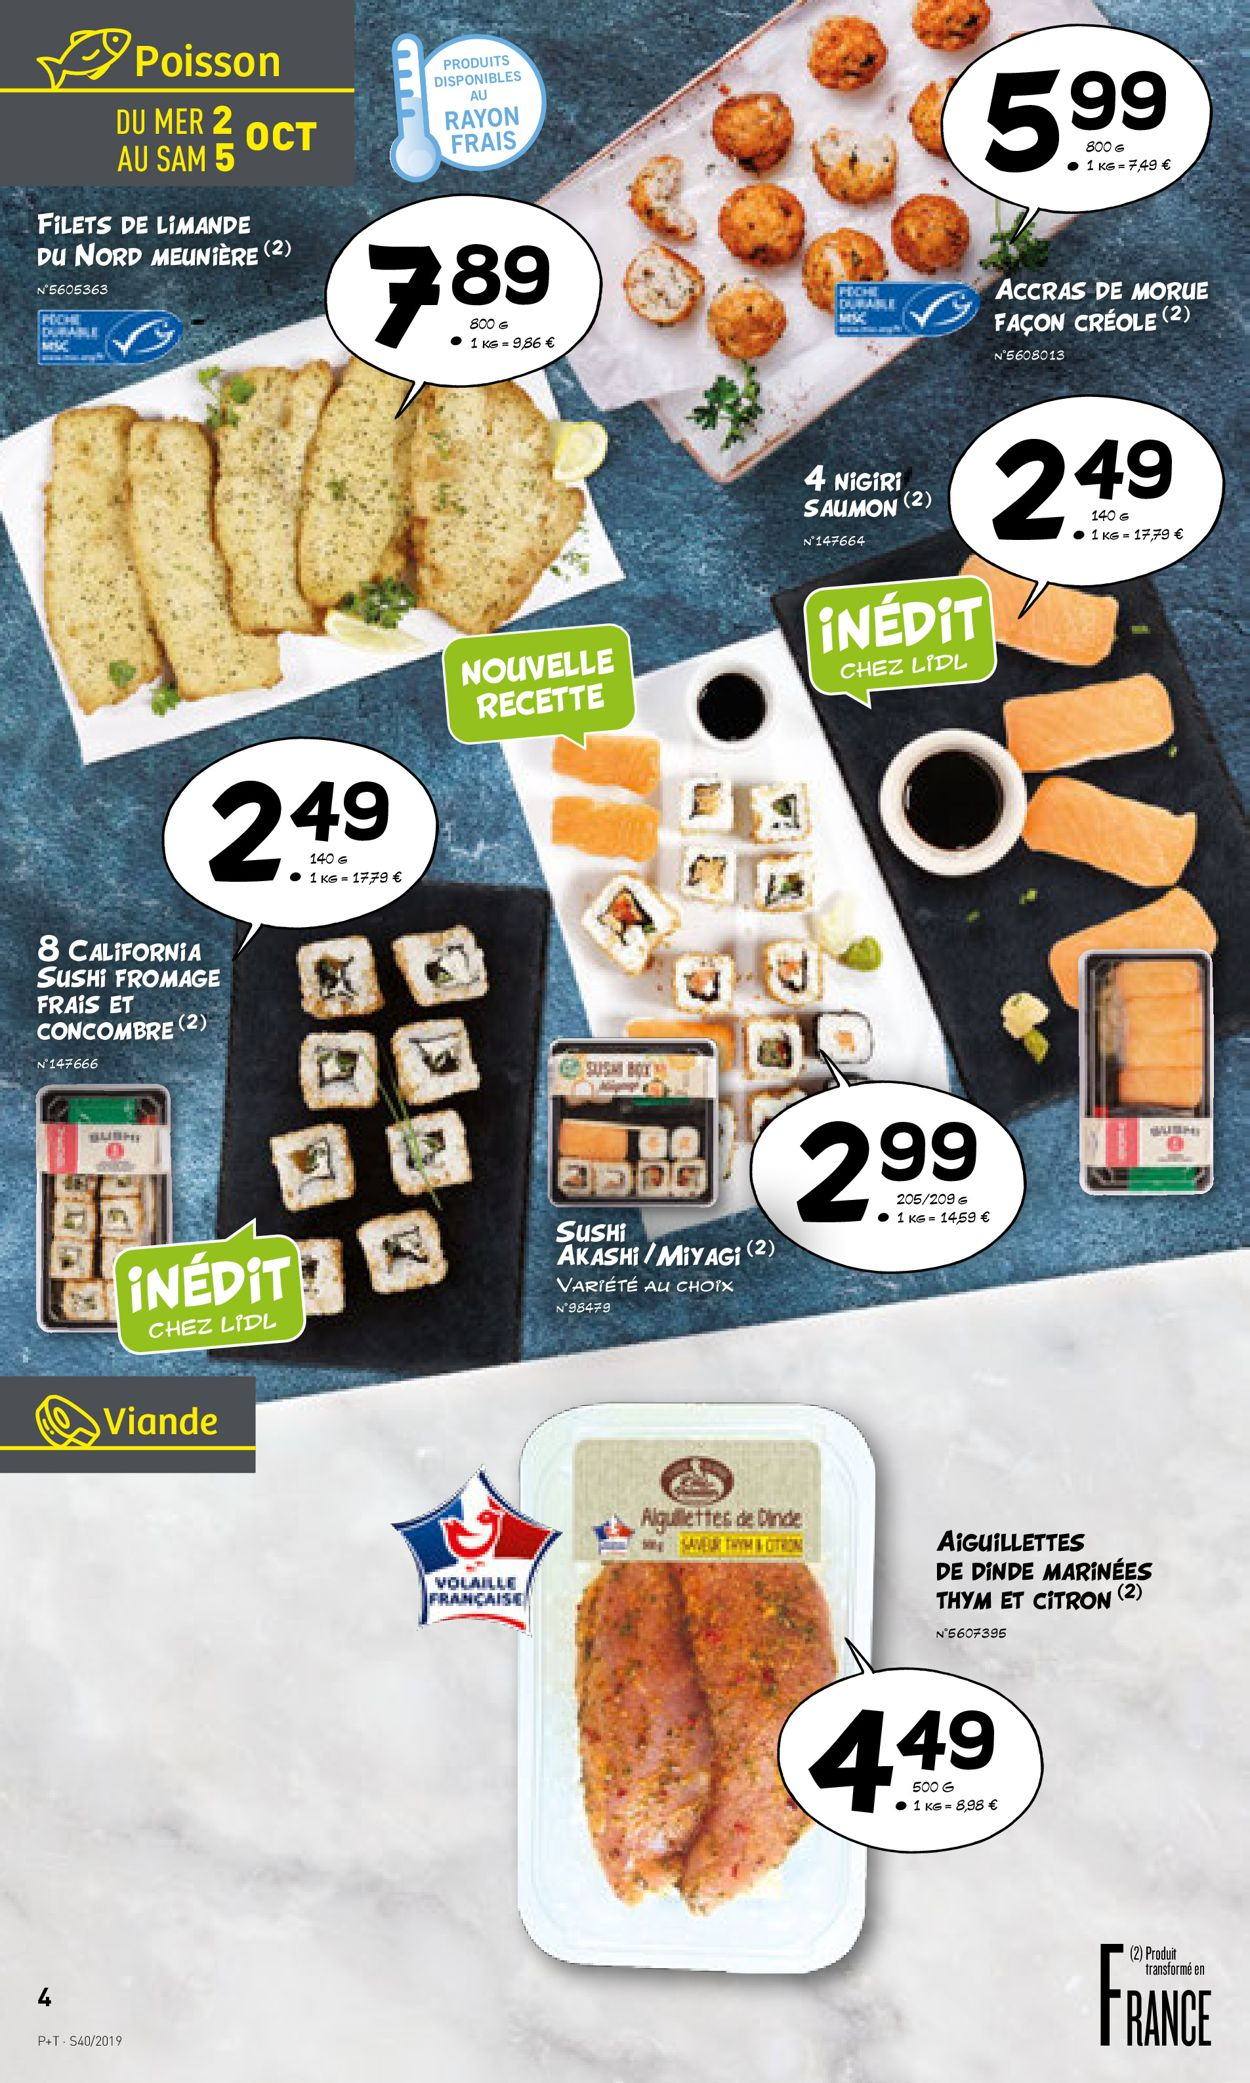 Lidl Catalogue - 02.10-08.10.2019 (Page 4)